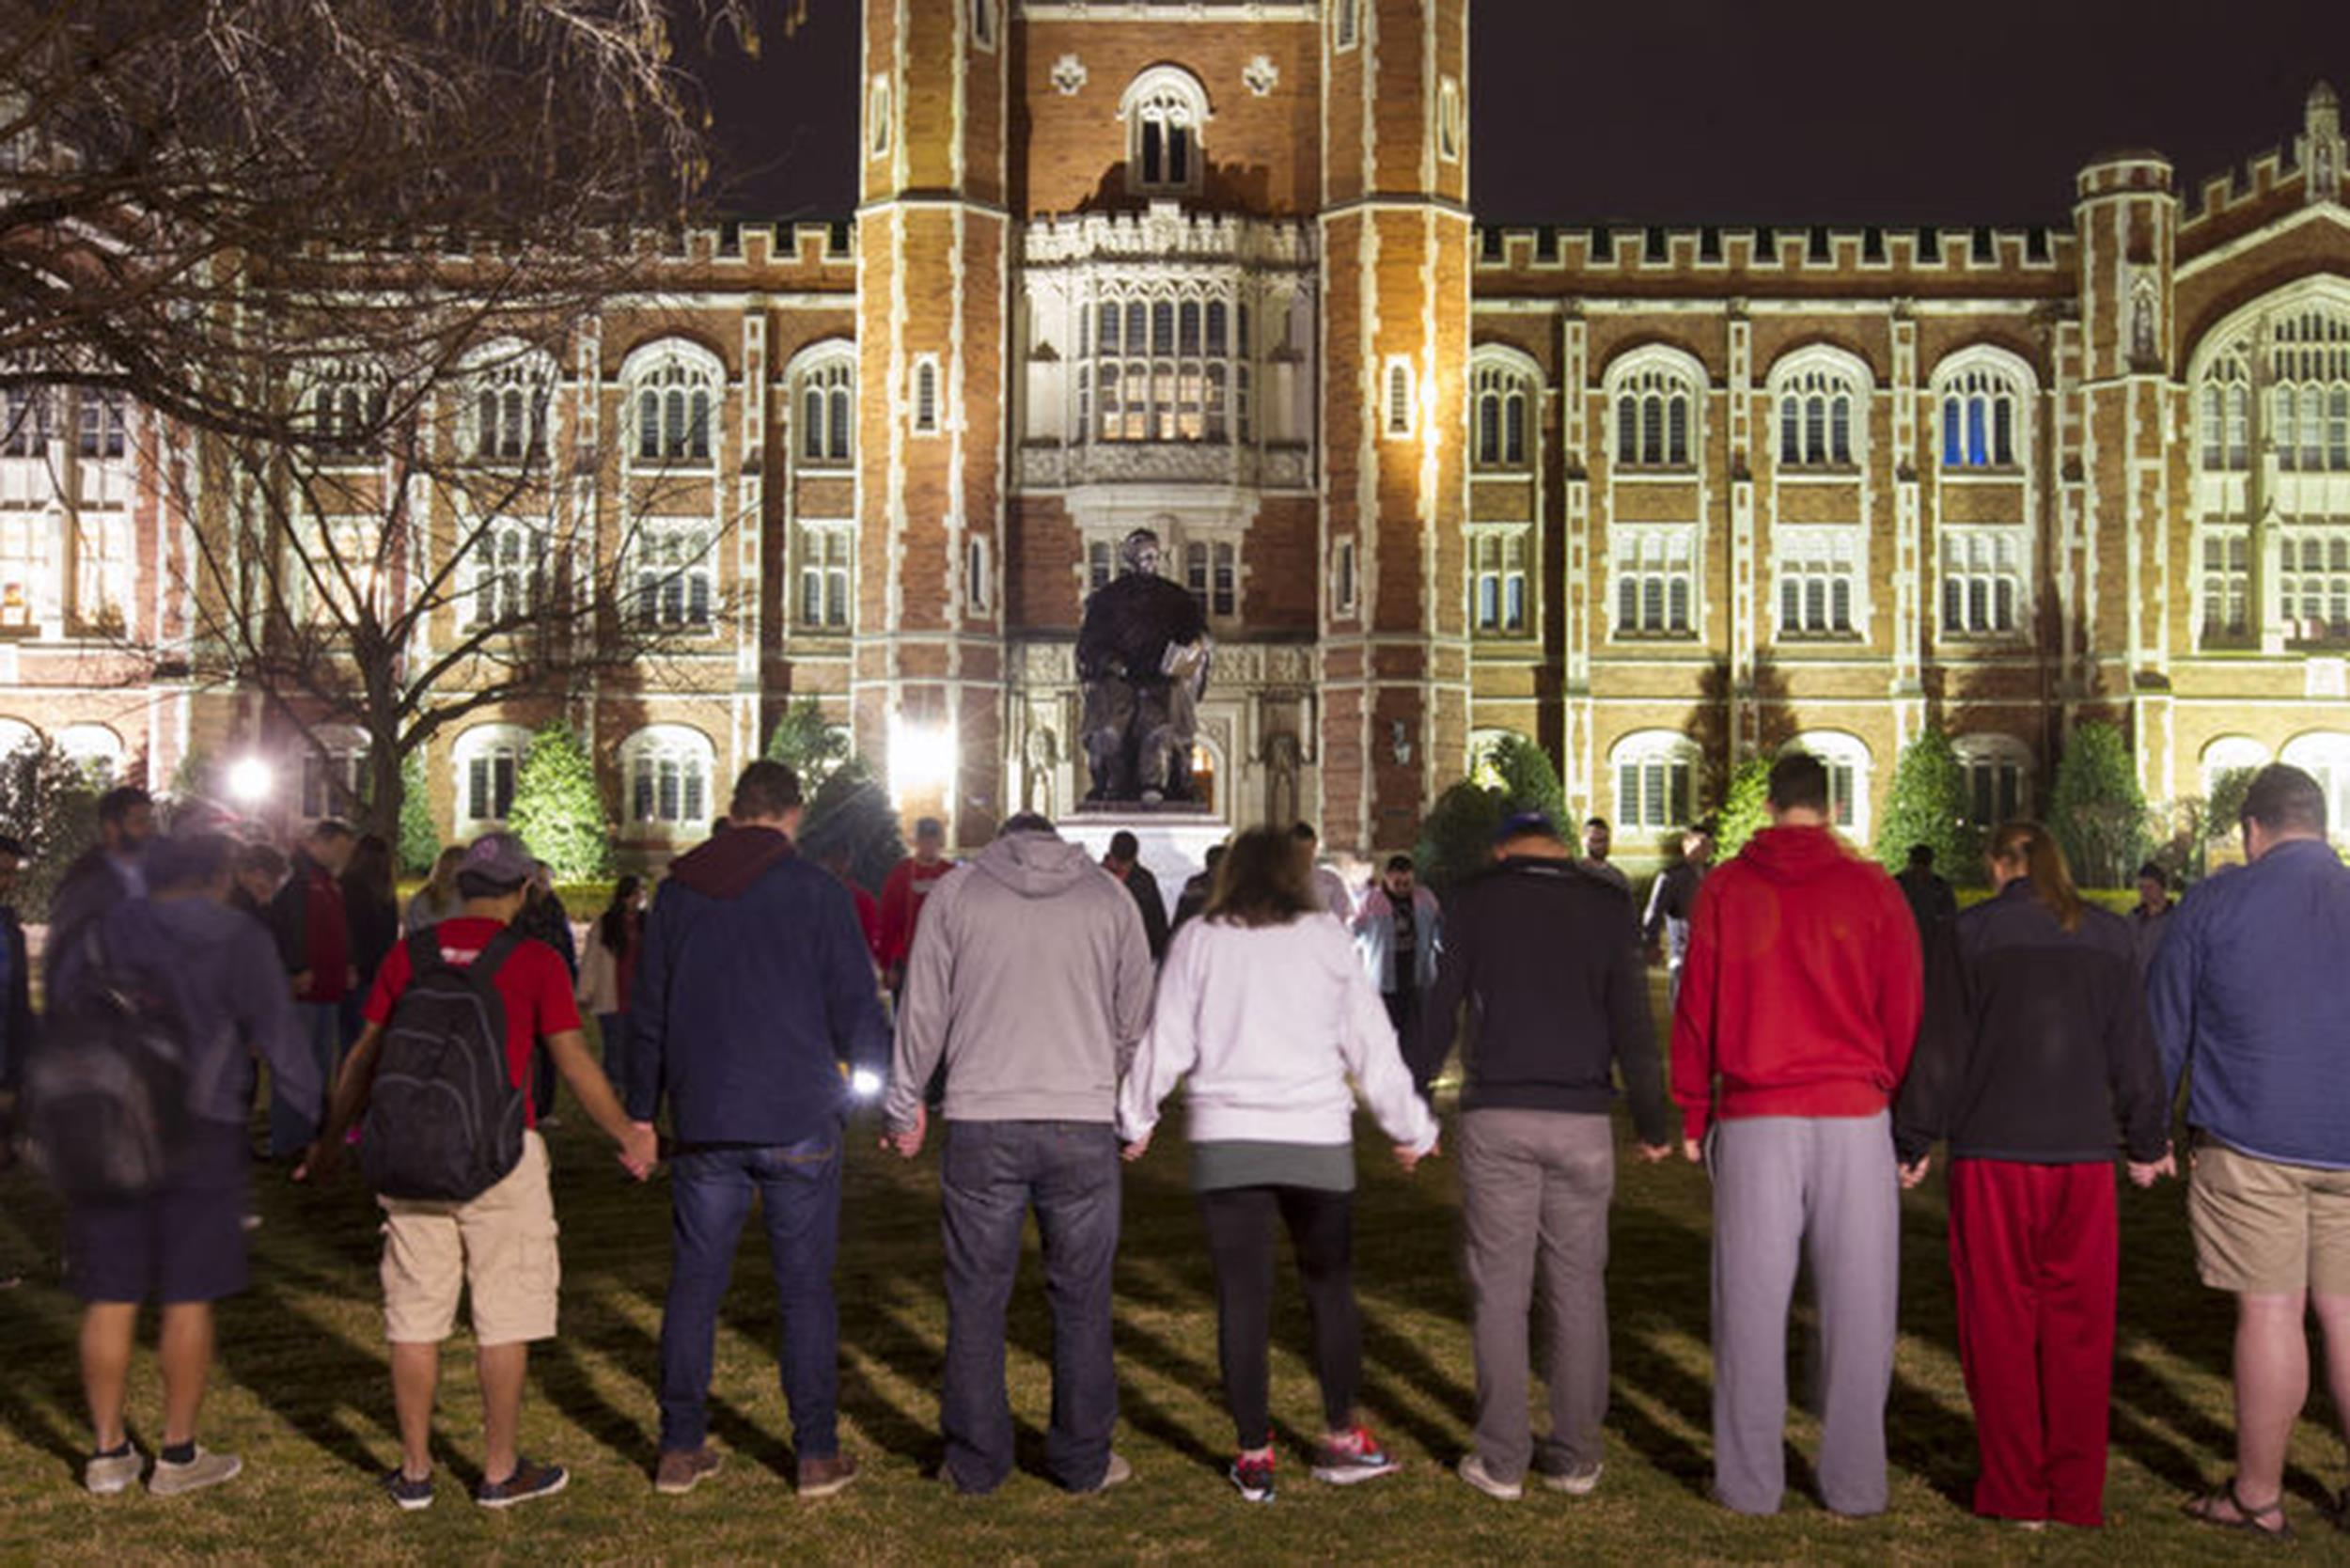 An Oklahoma Fraternity Was Shut Down After Their Racist Chant Was Caught on Video forecast